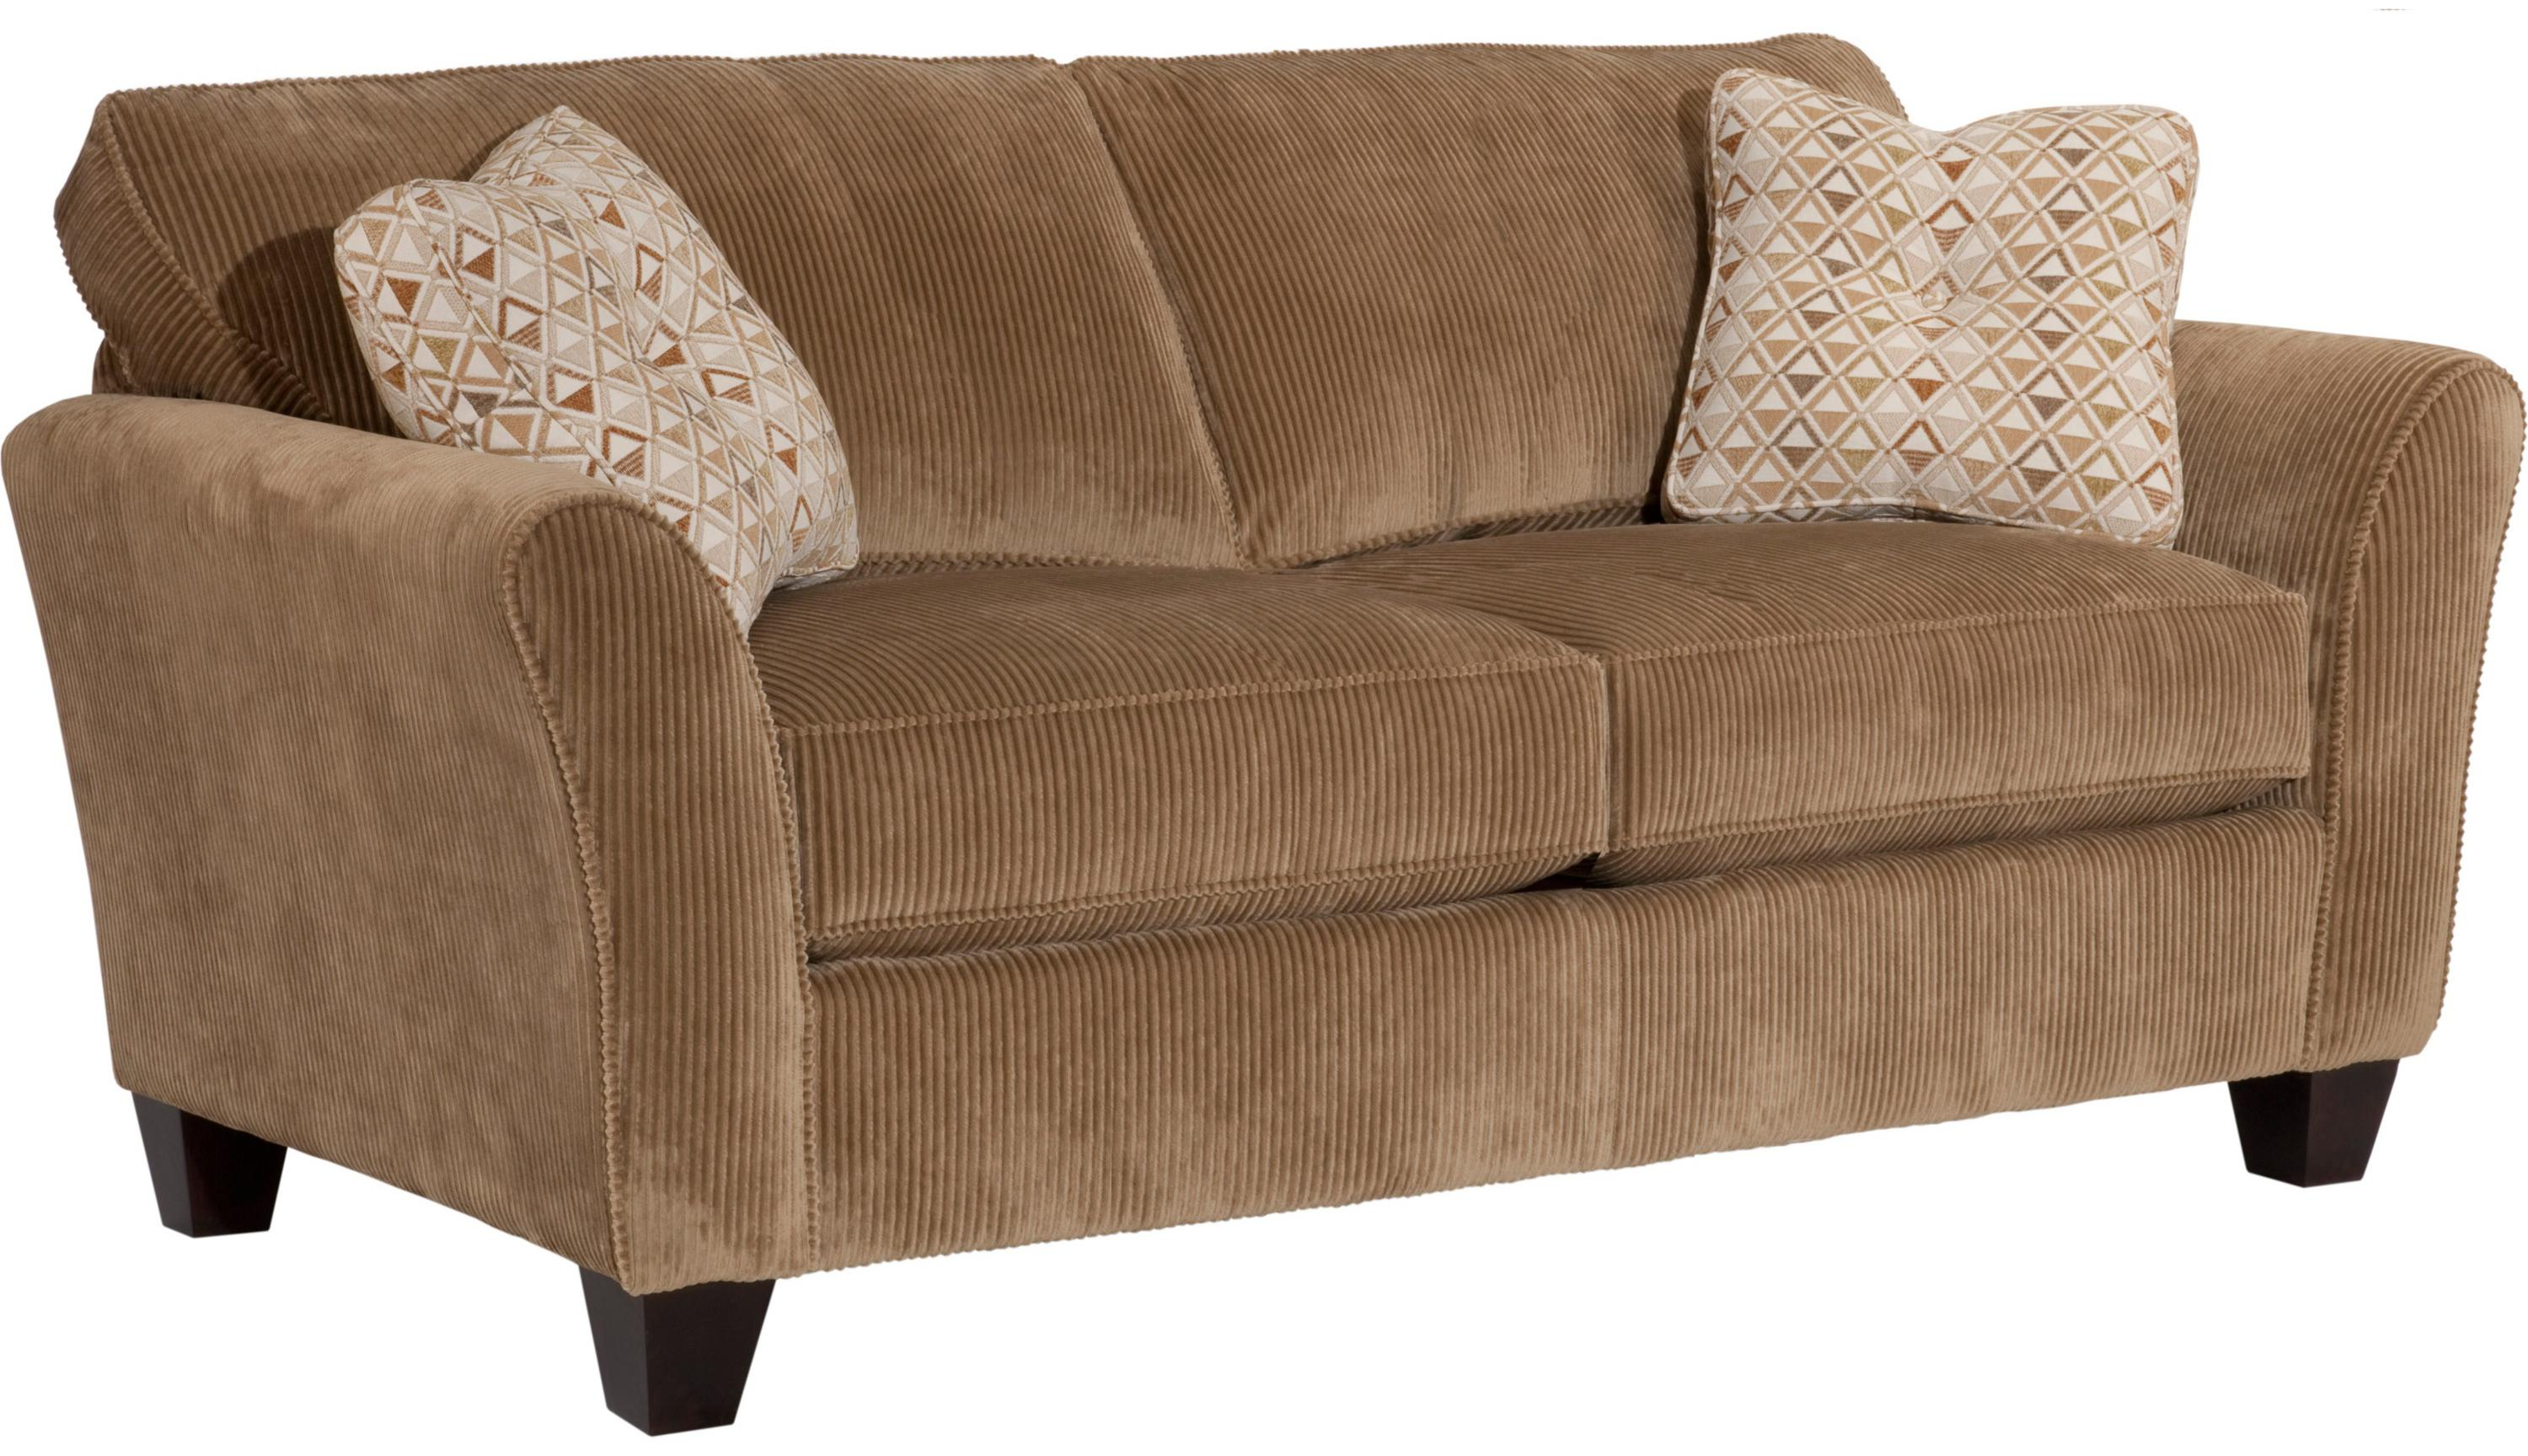 Broyhill Express Maddie Contemporary Apartment Sofa With Flared Arms   AHFA    Sofa Dealer Locator